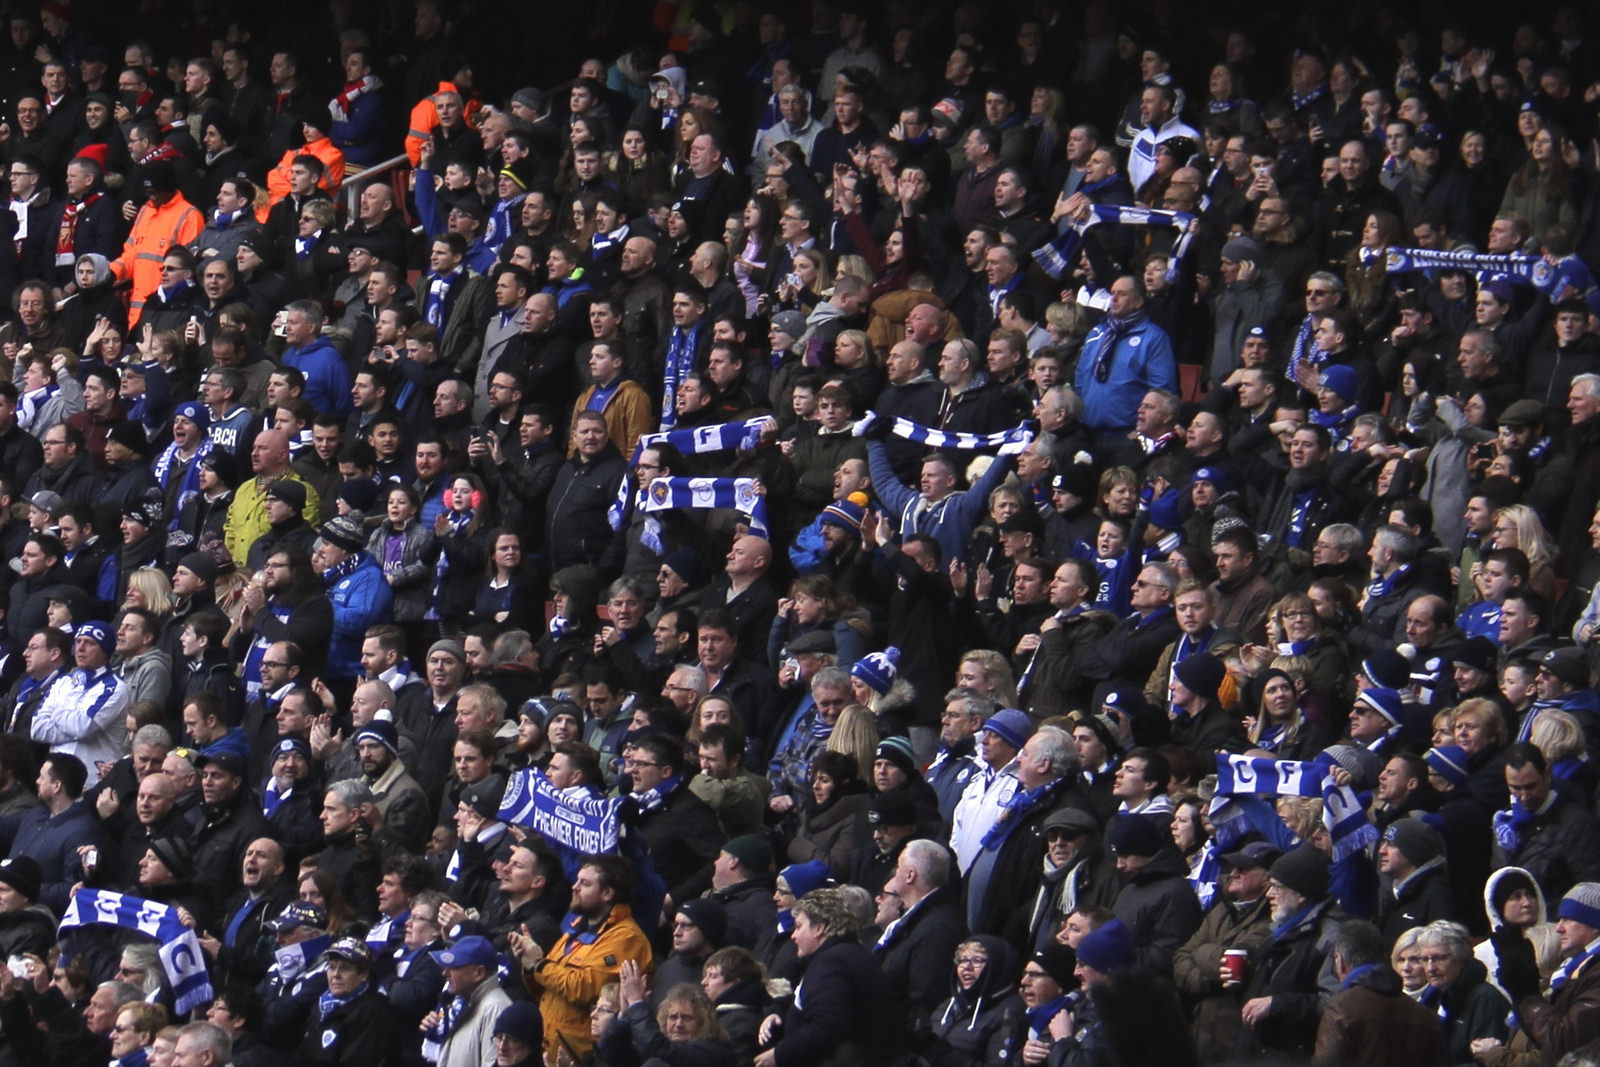 Leicester's fans have had to suffer a few tense 1-0 wins recently